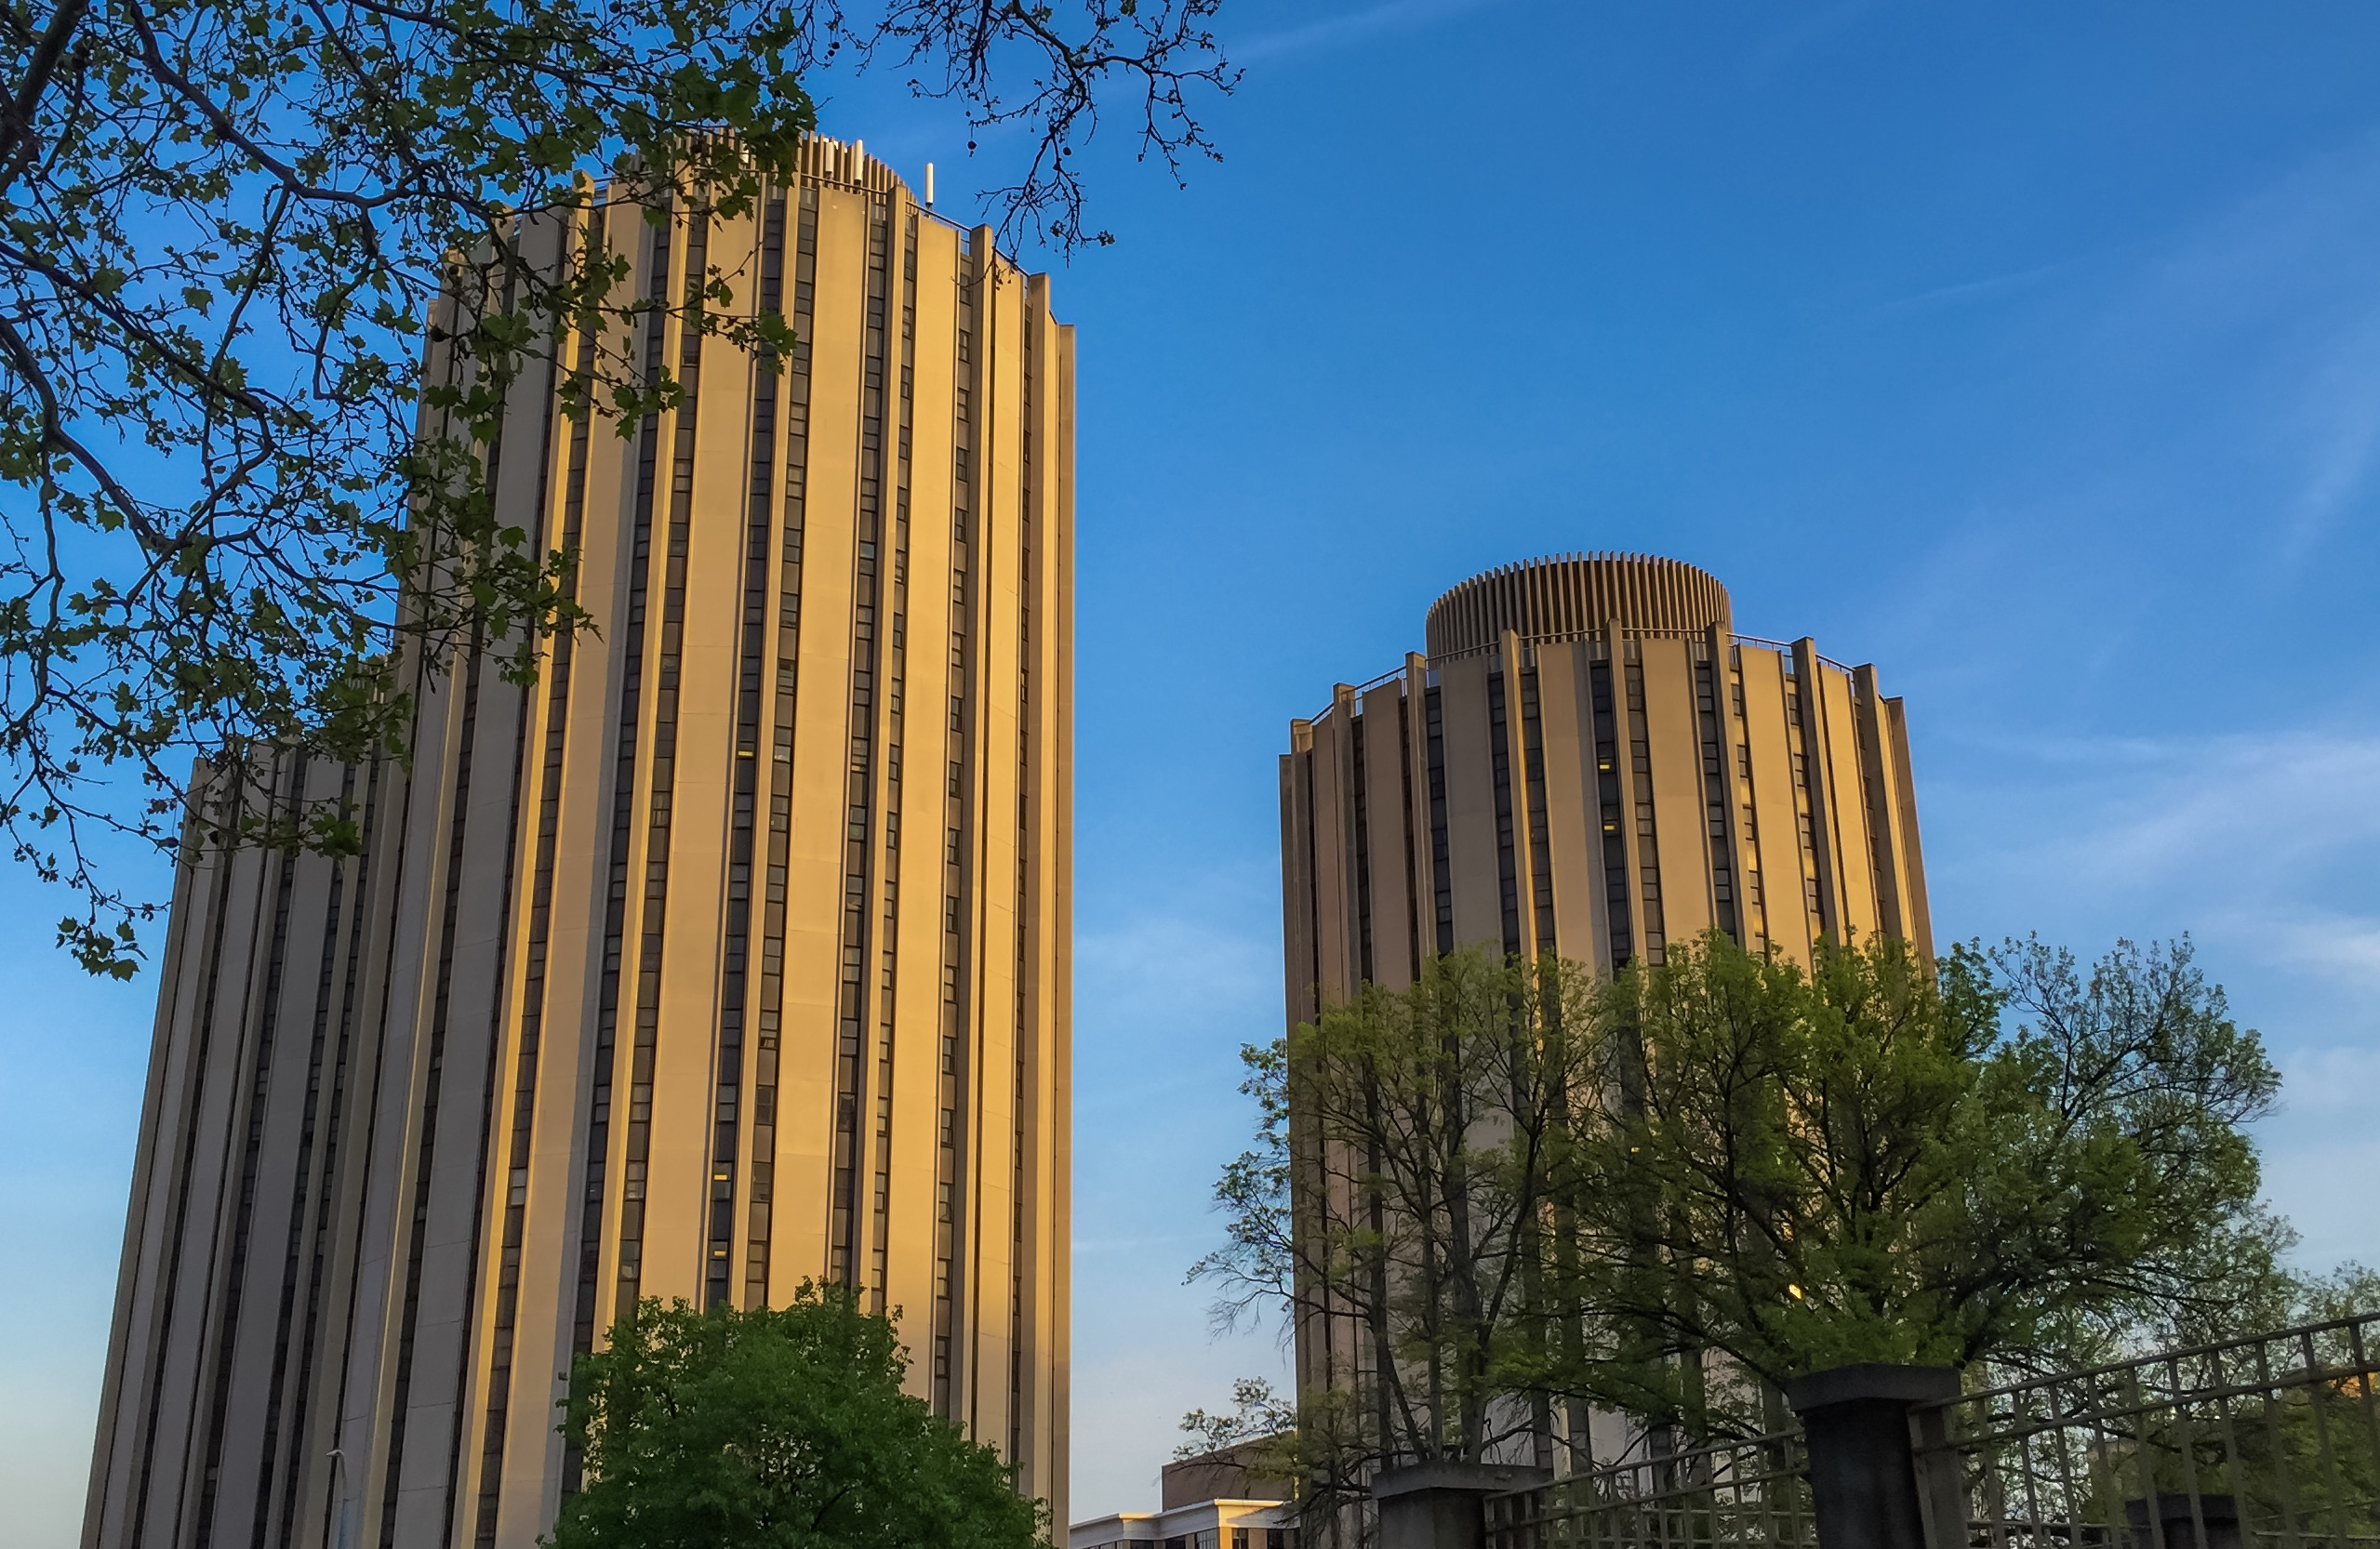 litchfield_towers_at_the_university_of_pittsburgh